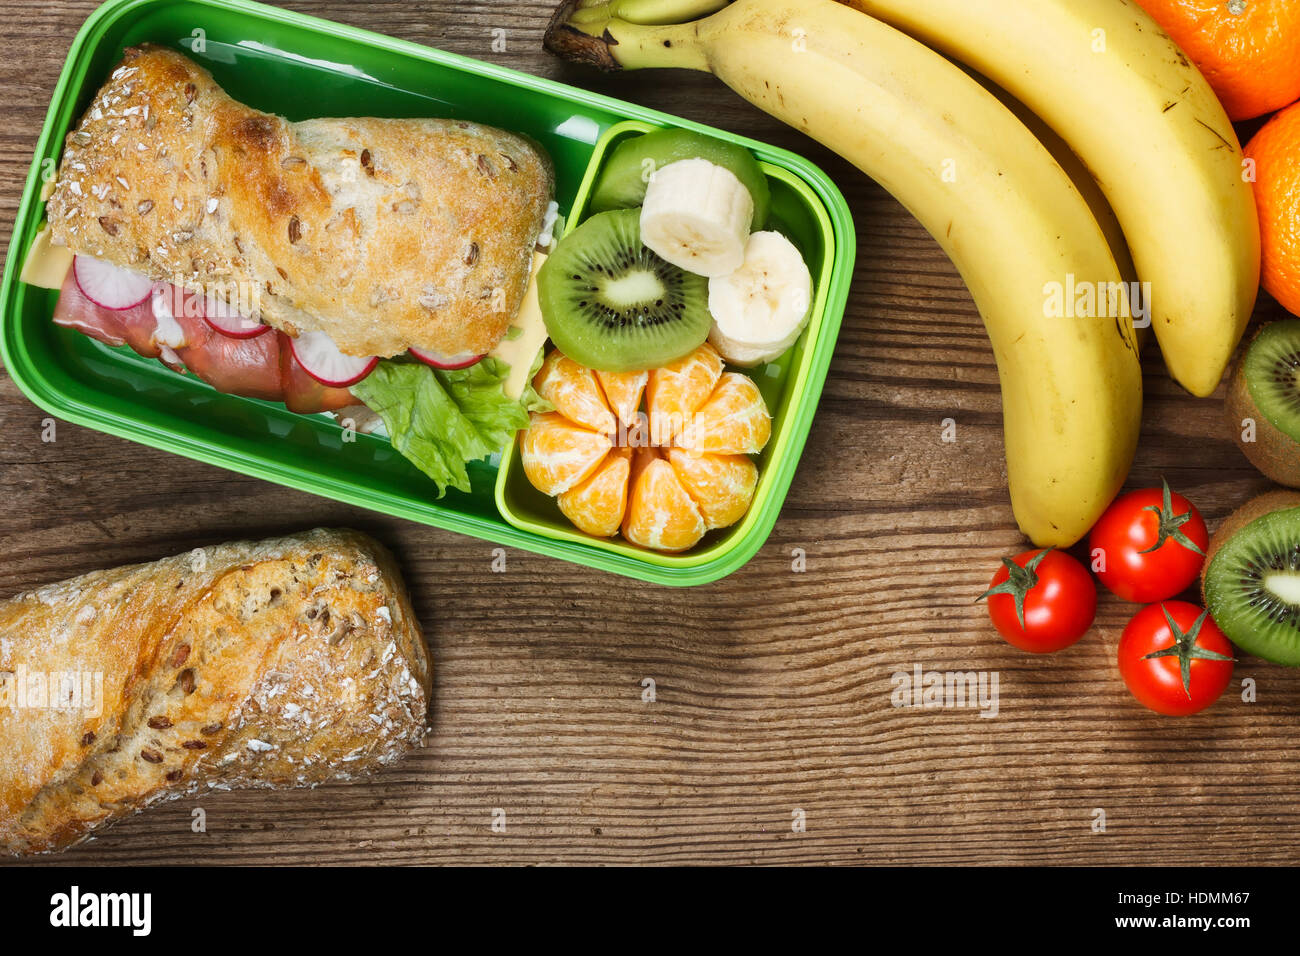 Lunchbox on wooden table. Ham sandwich and fruits in plastic box - Stock Image